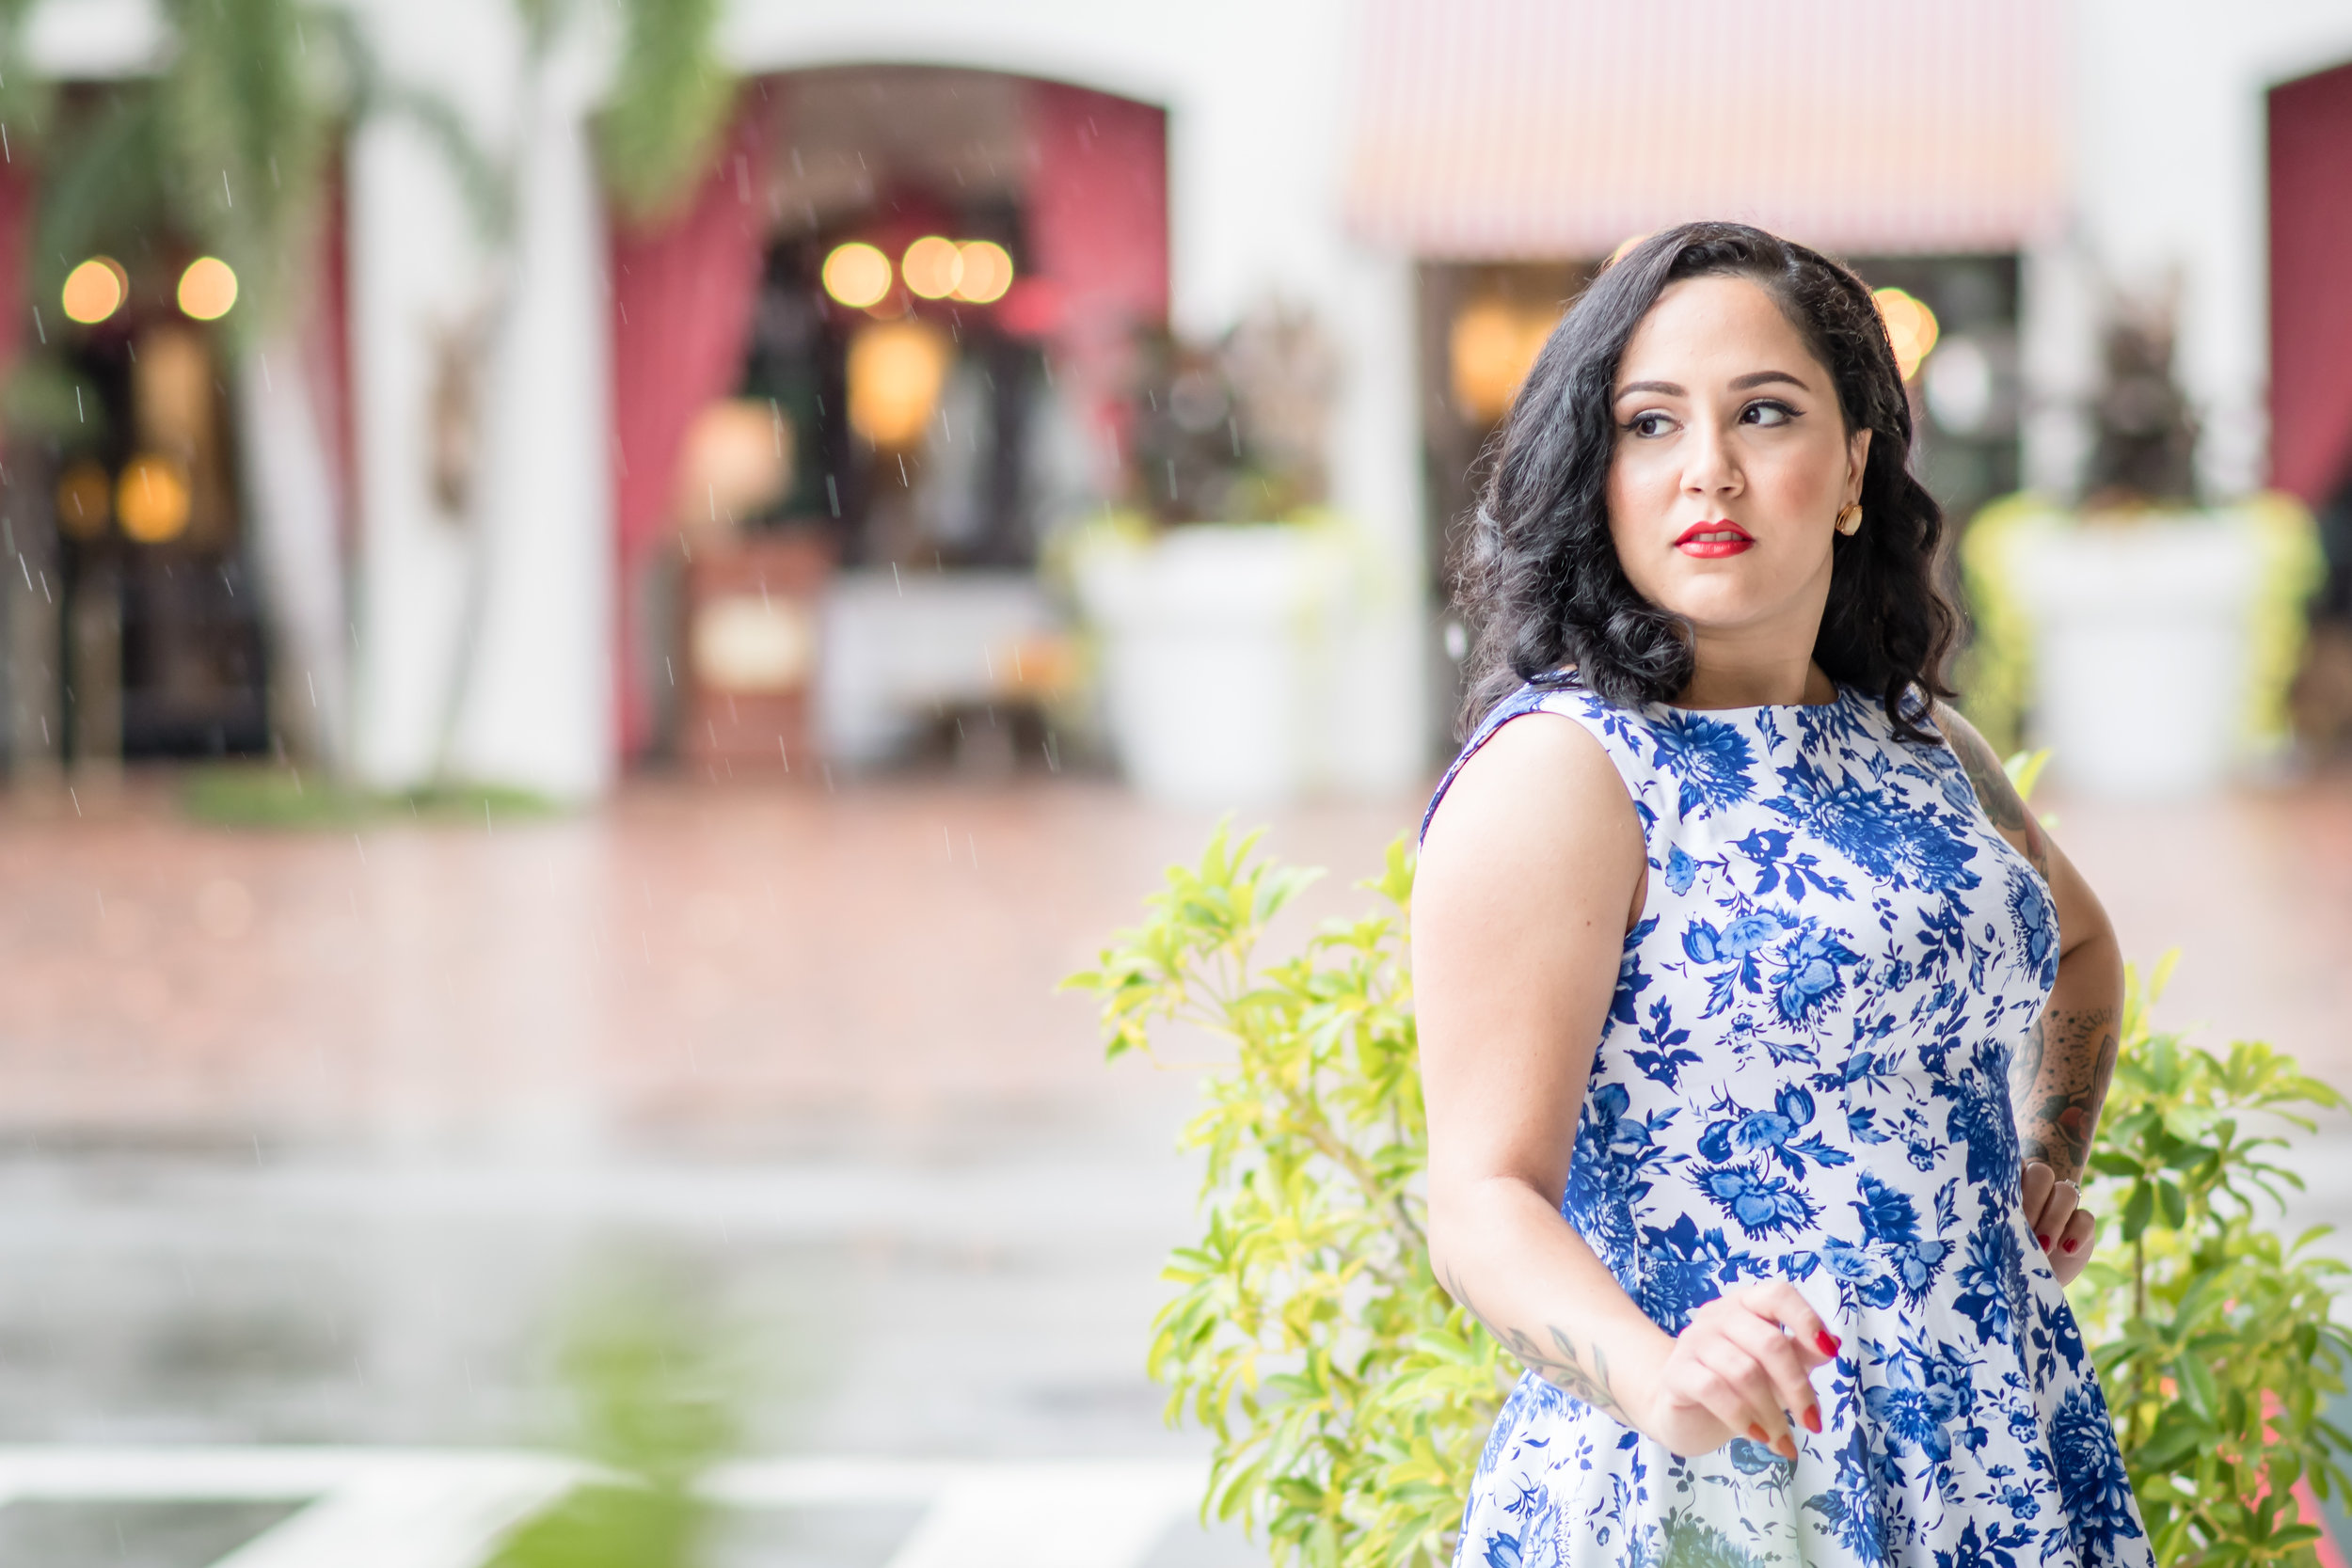 vintage-glam-inspired-photoshoot-downtown-celebration-orlando-photographer-yanitza-ninett-9.jpg